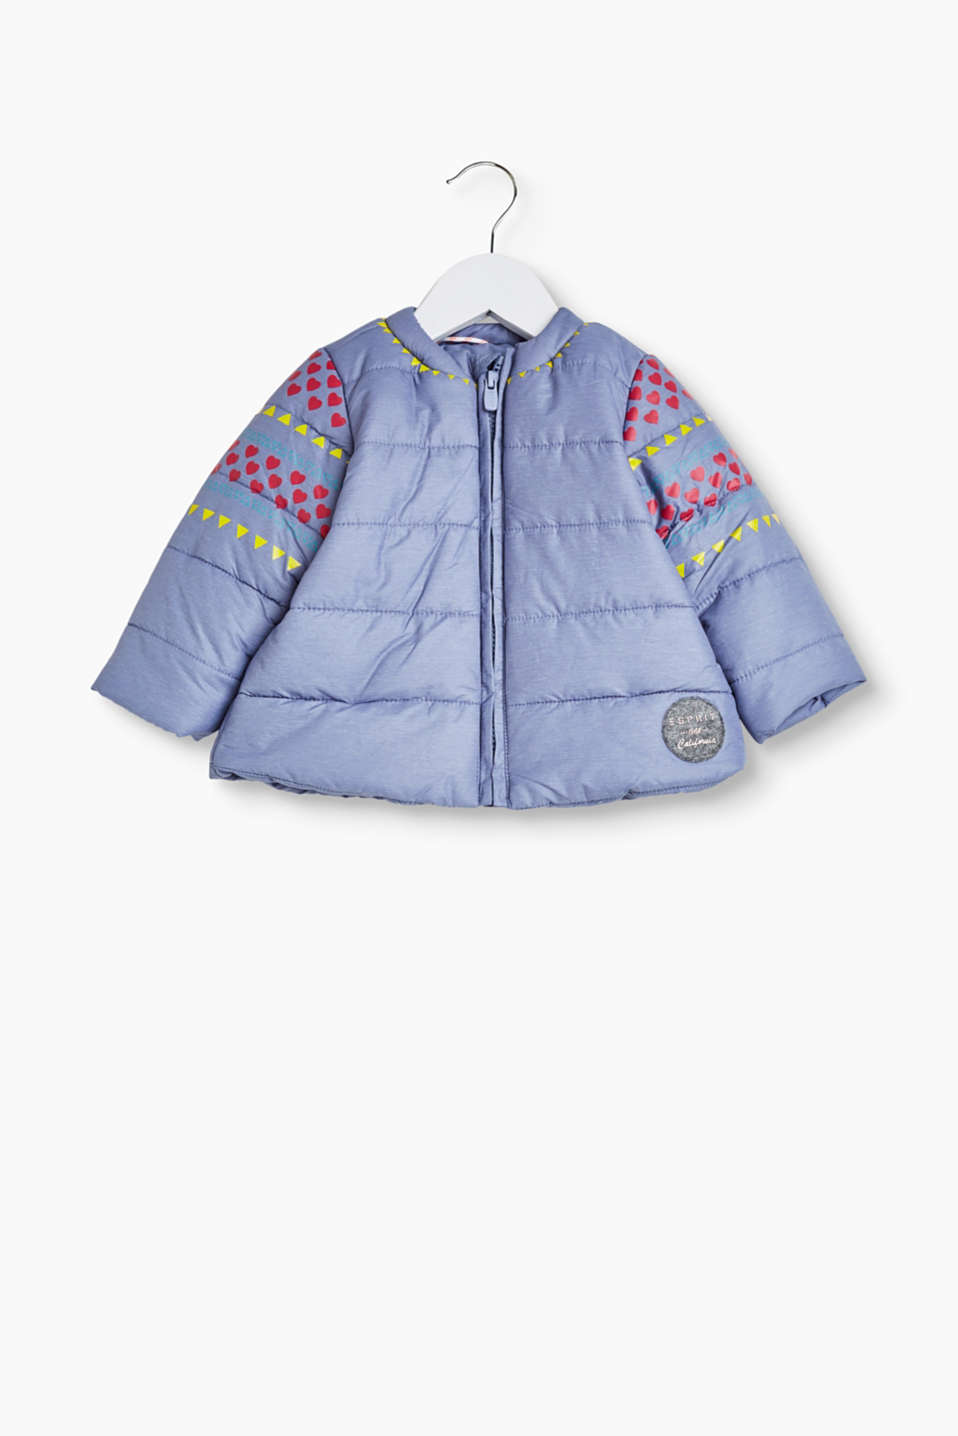 Quilted jacket with pretty printed borders and a felt logo tag